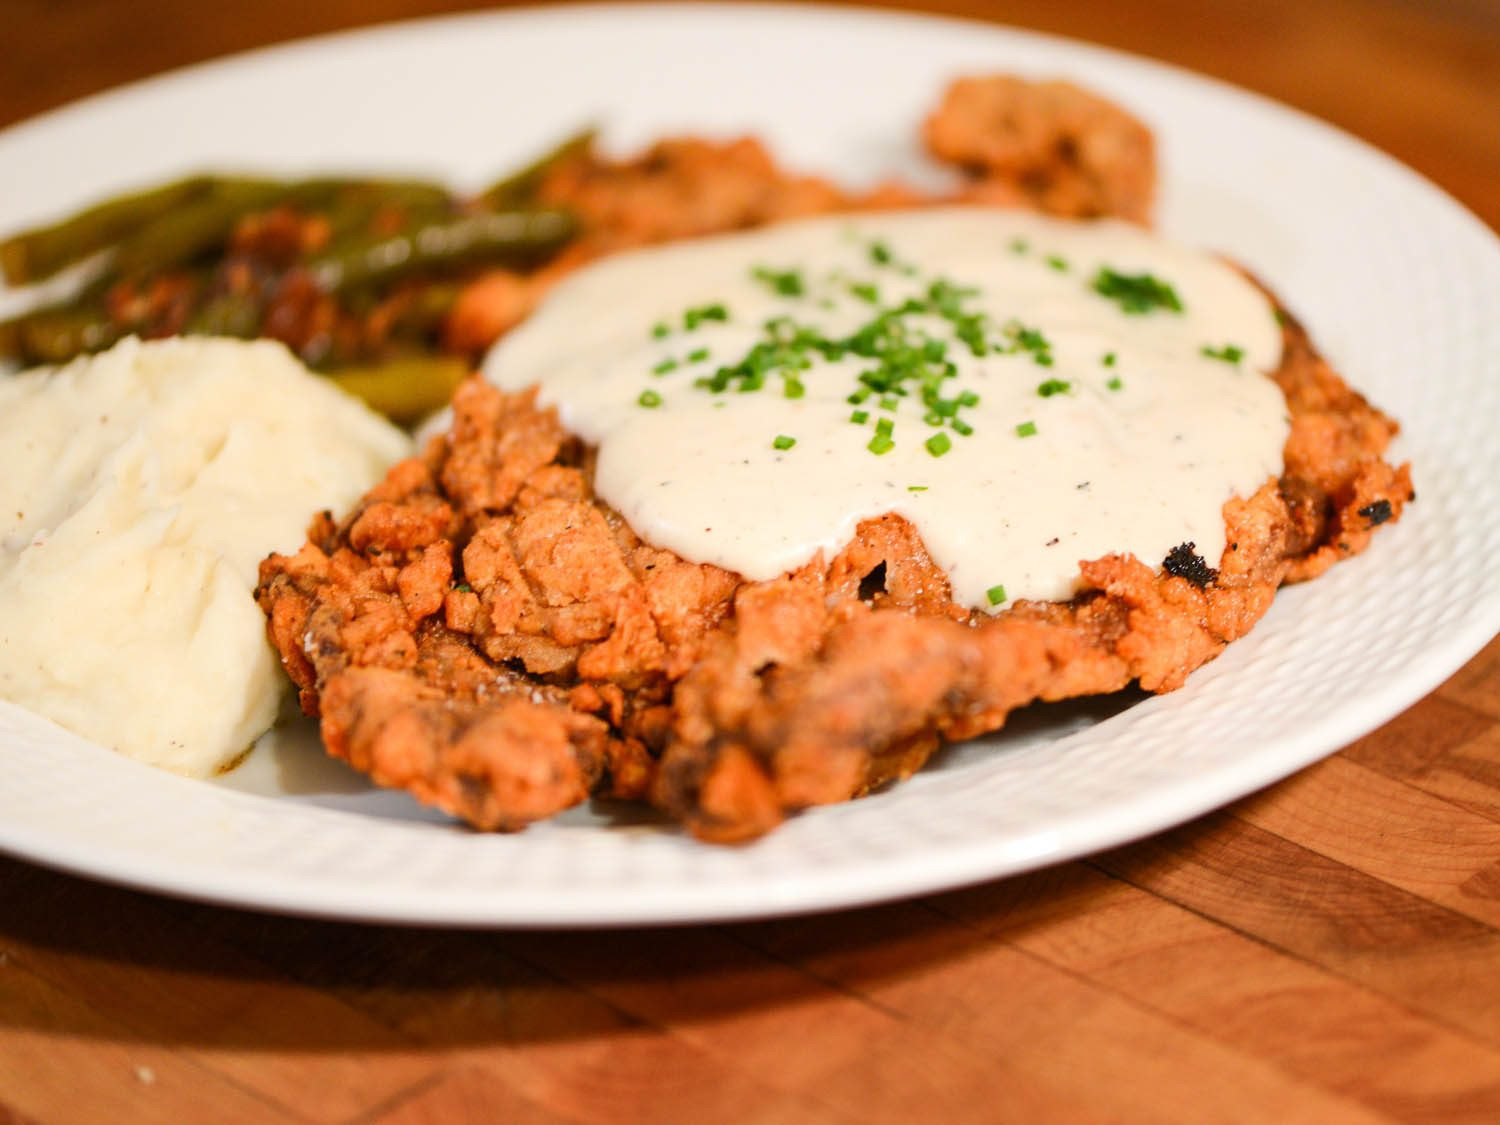 Chicken Fried Steak Recipes  Tender and Beefy Chicken Fried Steak Recipe